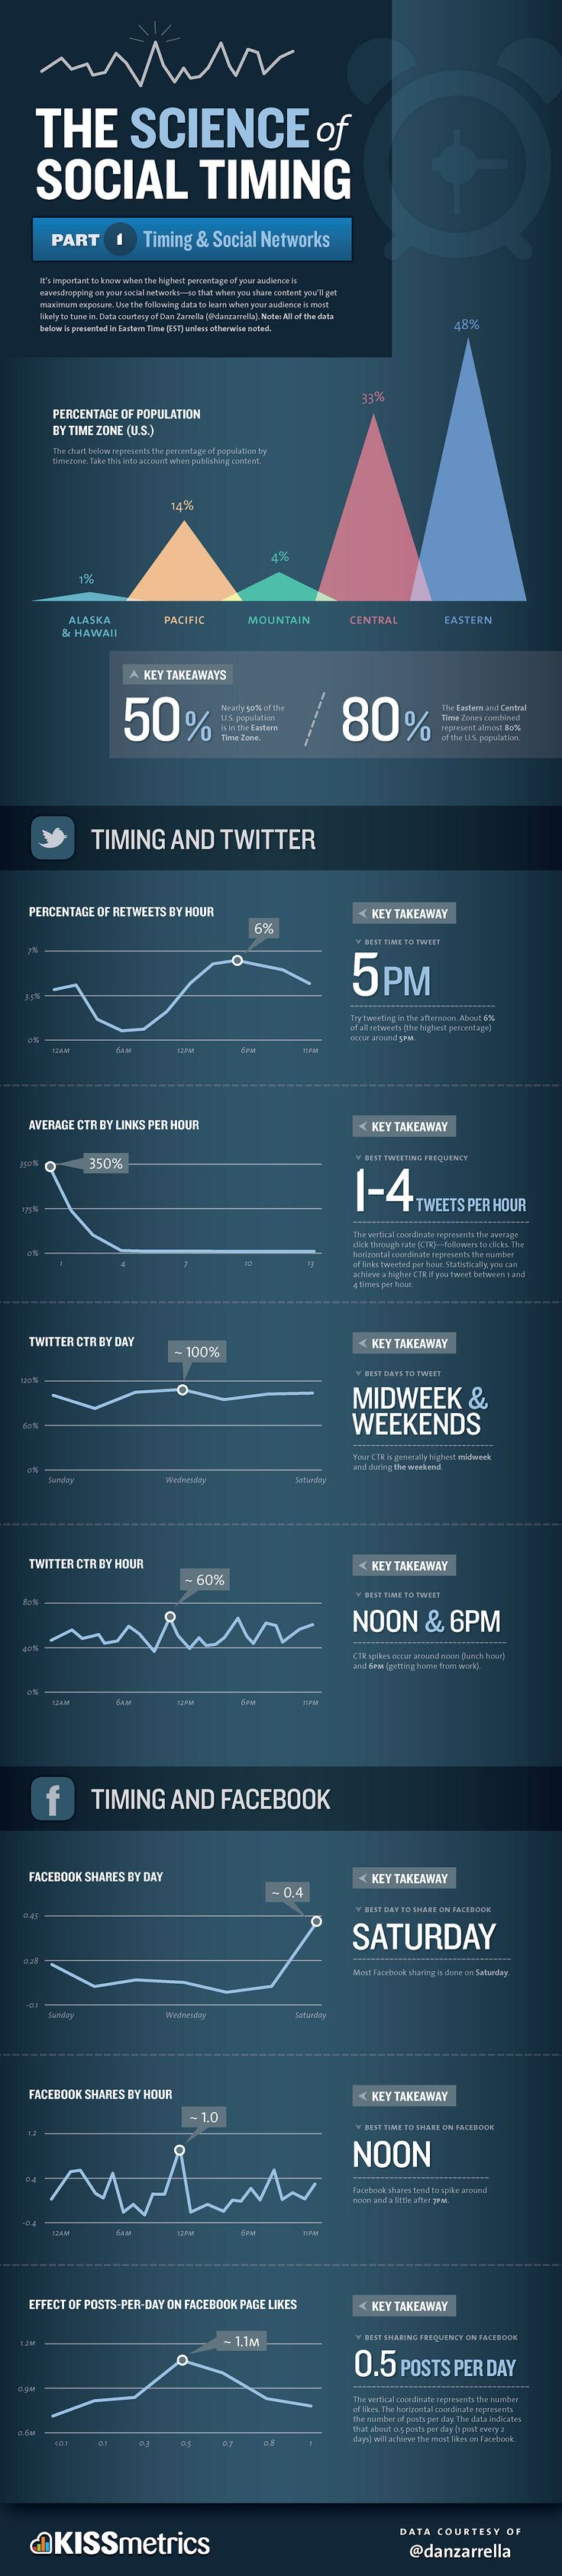 The Science of Social Timing Part 1: Social Networks